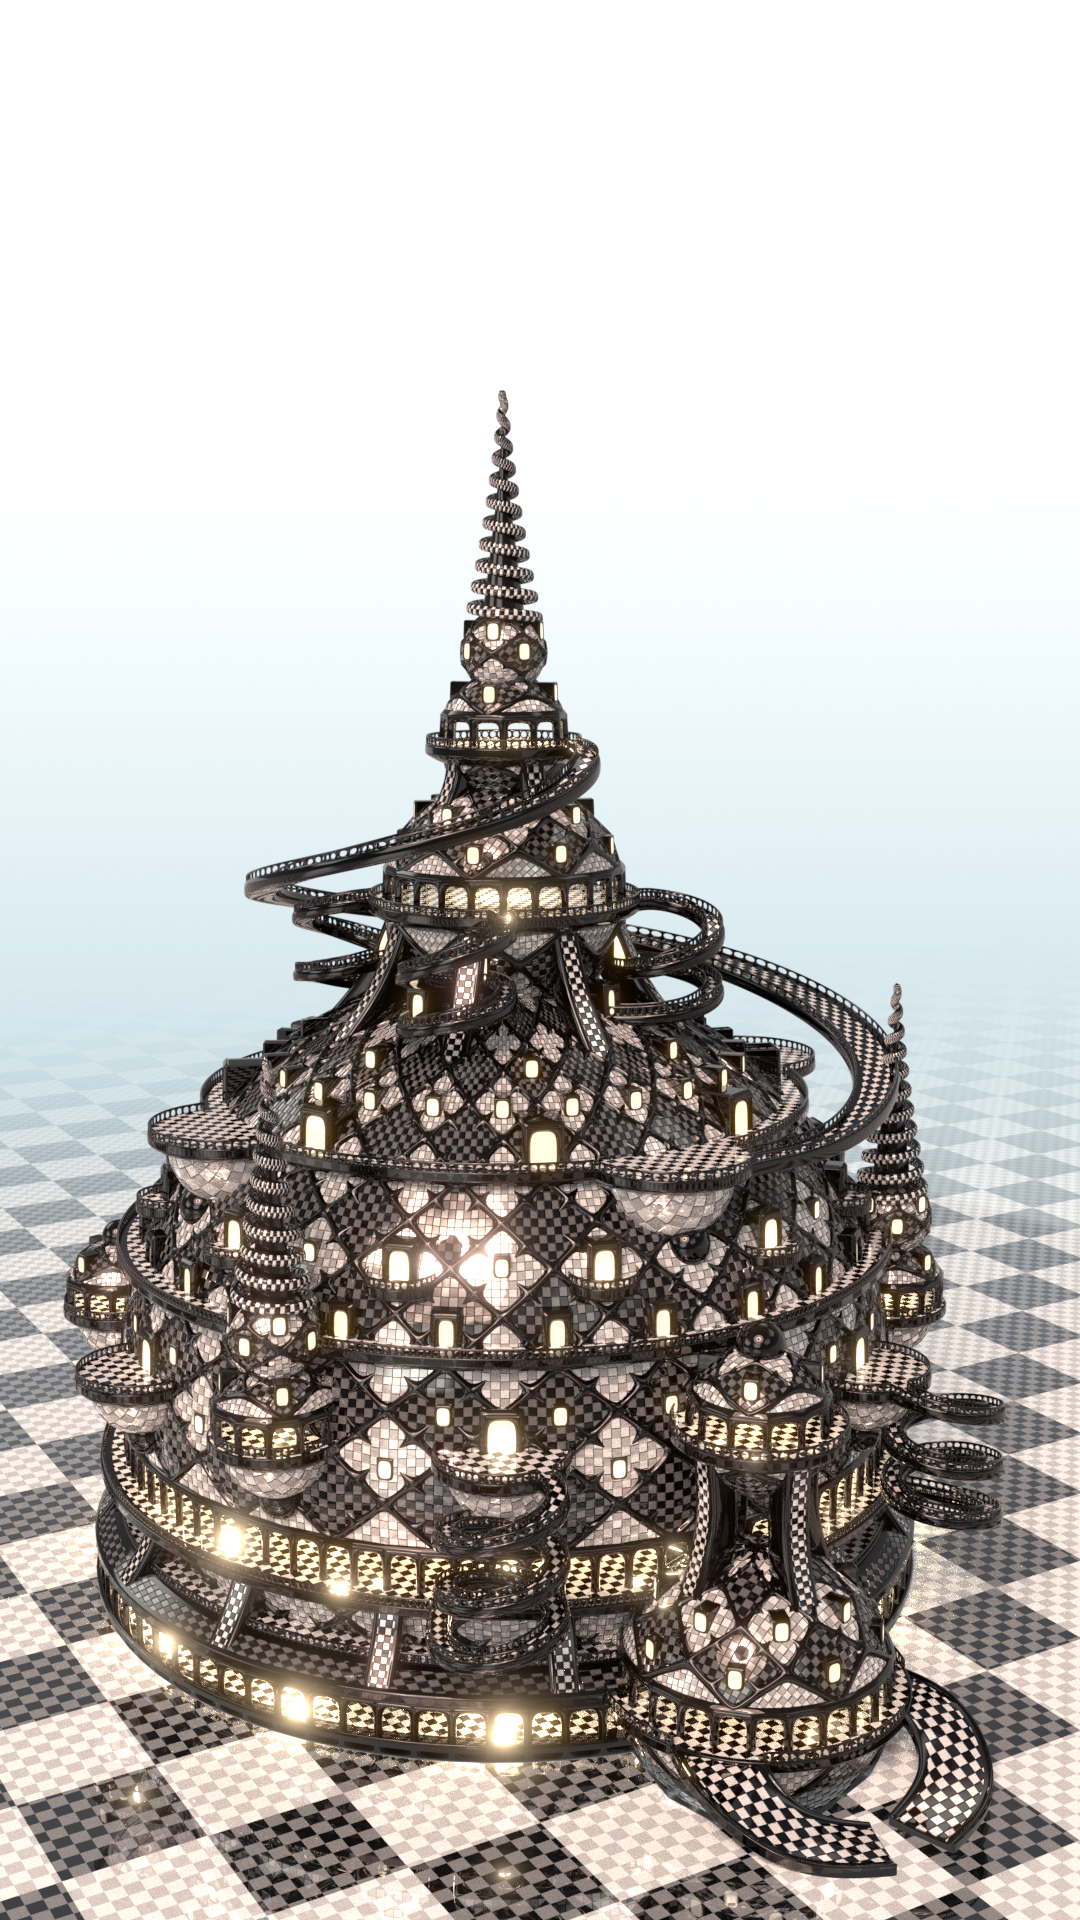 Dystopian Tower - (Contest) by Etrelley